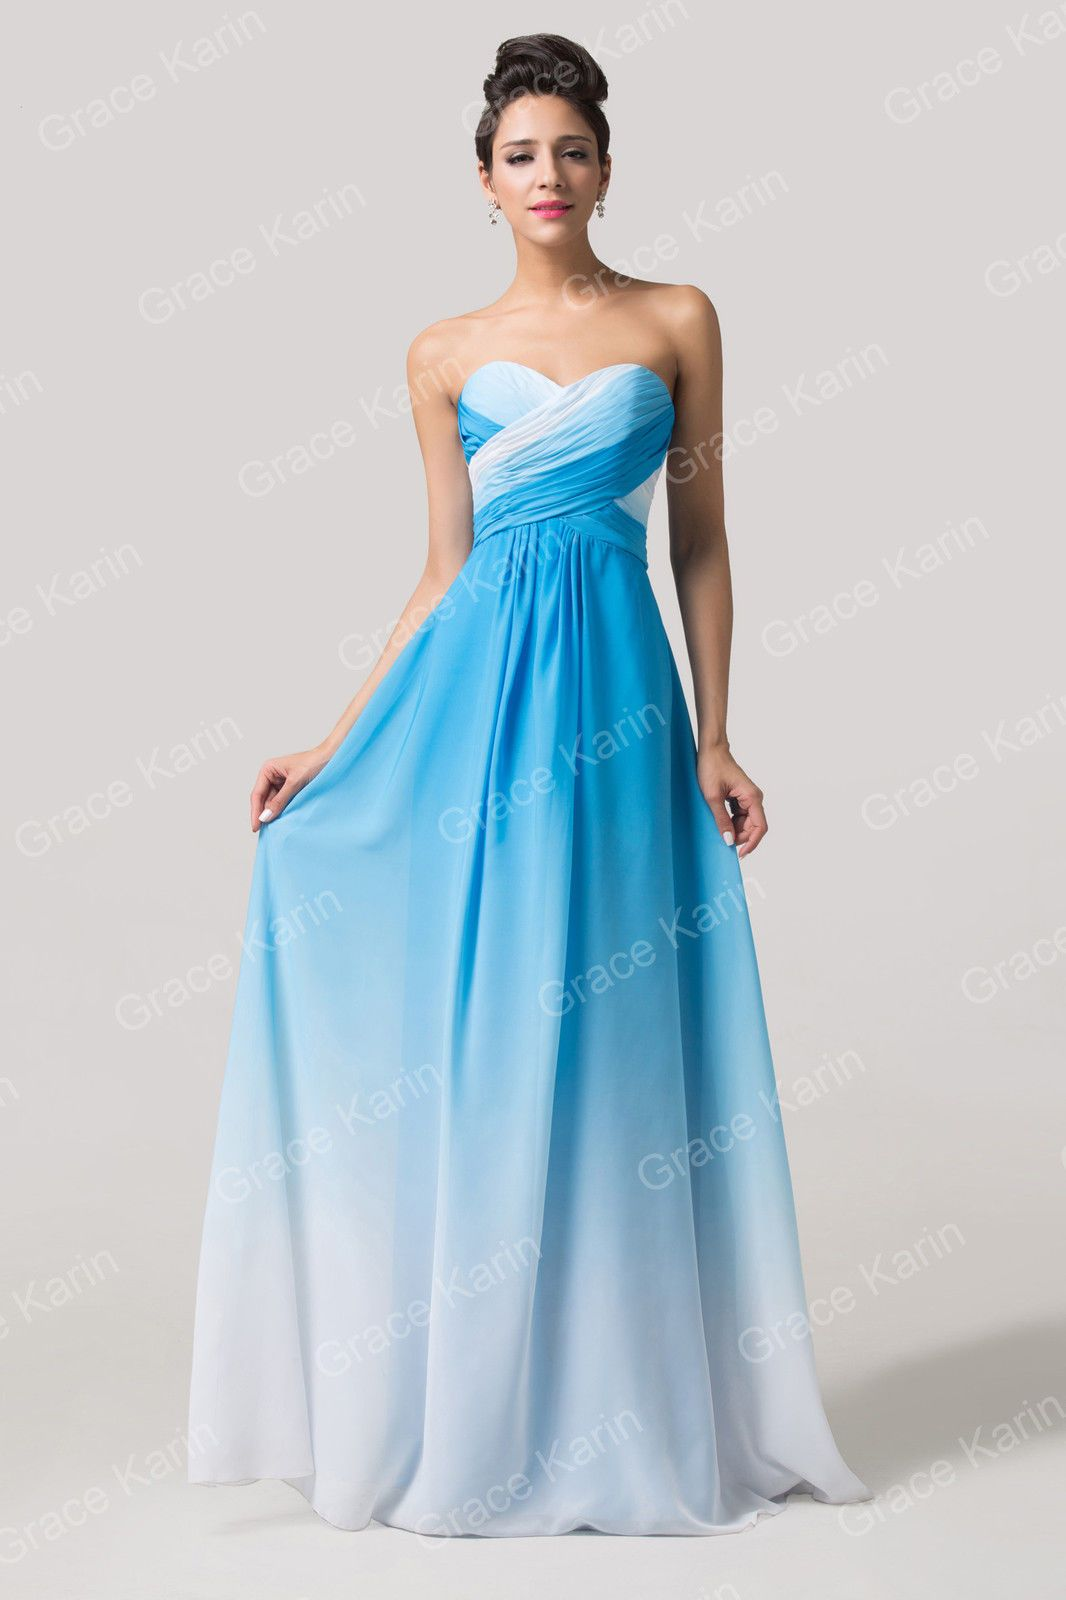 Plus Size Chiffon Ball Gown Homecoming Evening Prom Beach Wedding ...